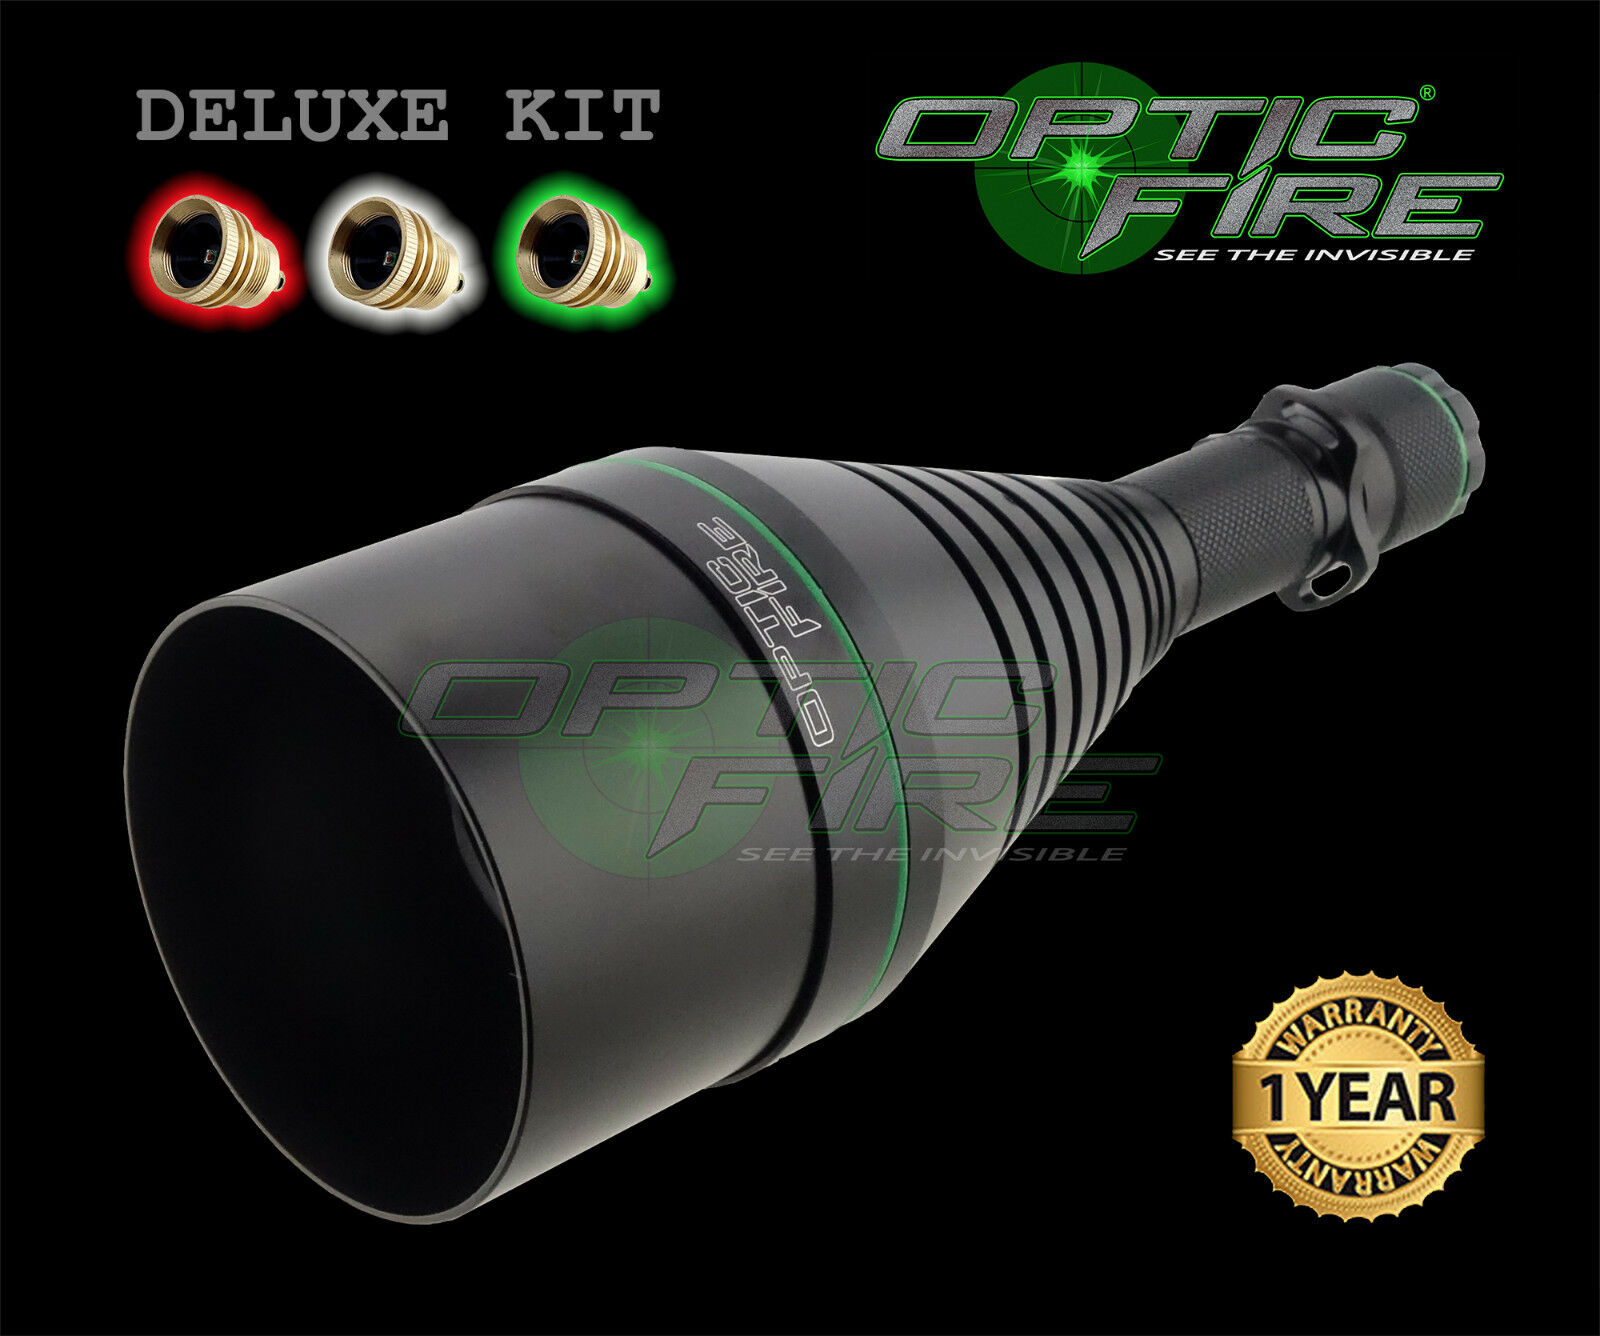 Opticfire® XS 3 LED High power hunting torch lamping lamp gun light deluxe kit